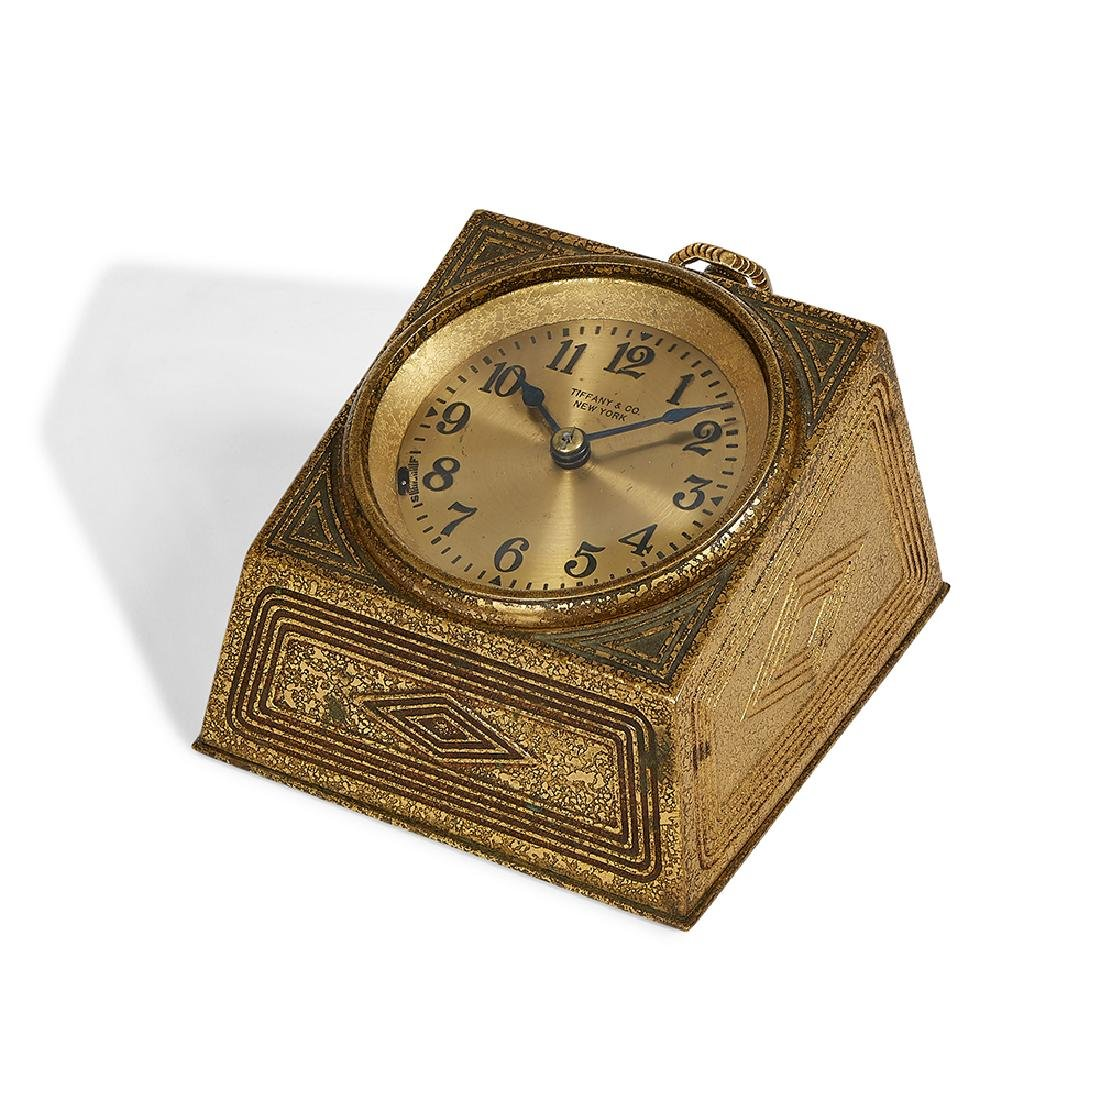 Tiffany Studios Graduate desk clock